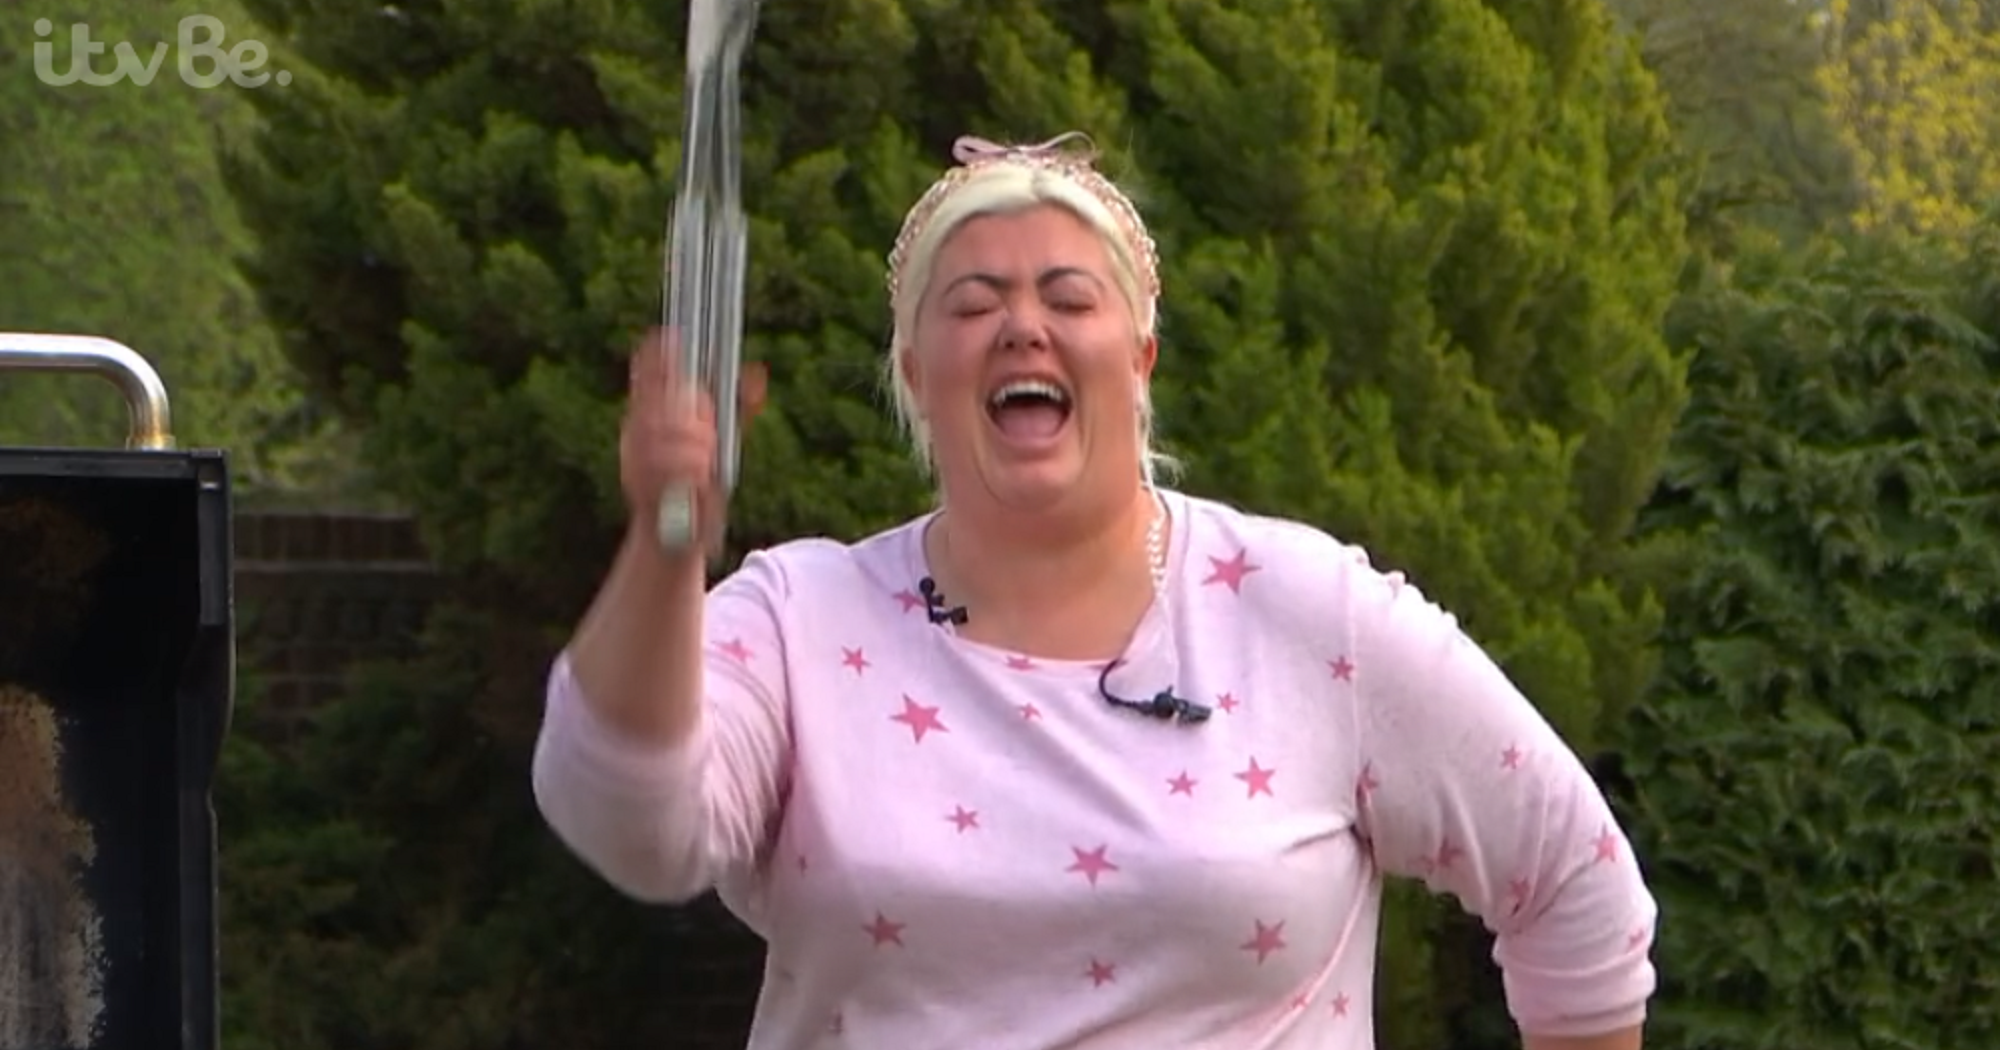 Gemma Collins hailed 'our queen and saviour' as Diva On Lockdown brings 'much needed laughter'